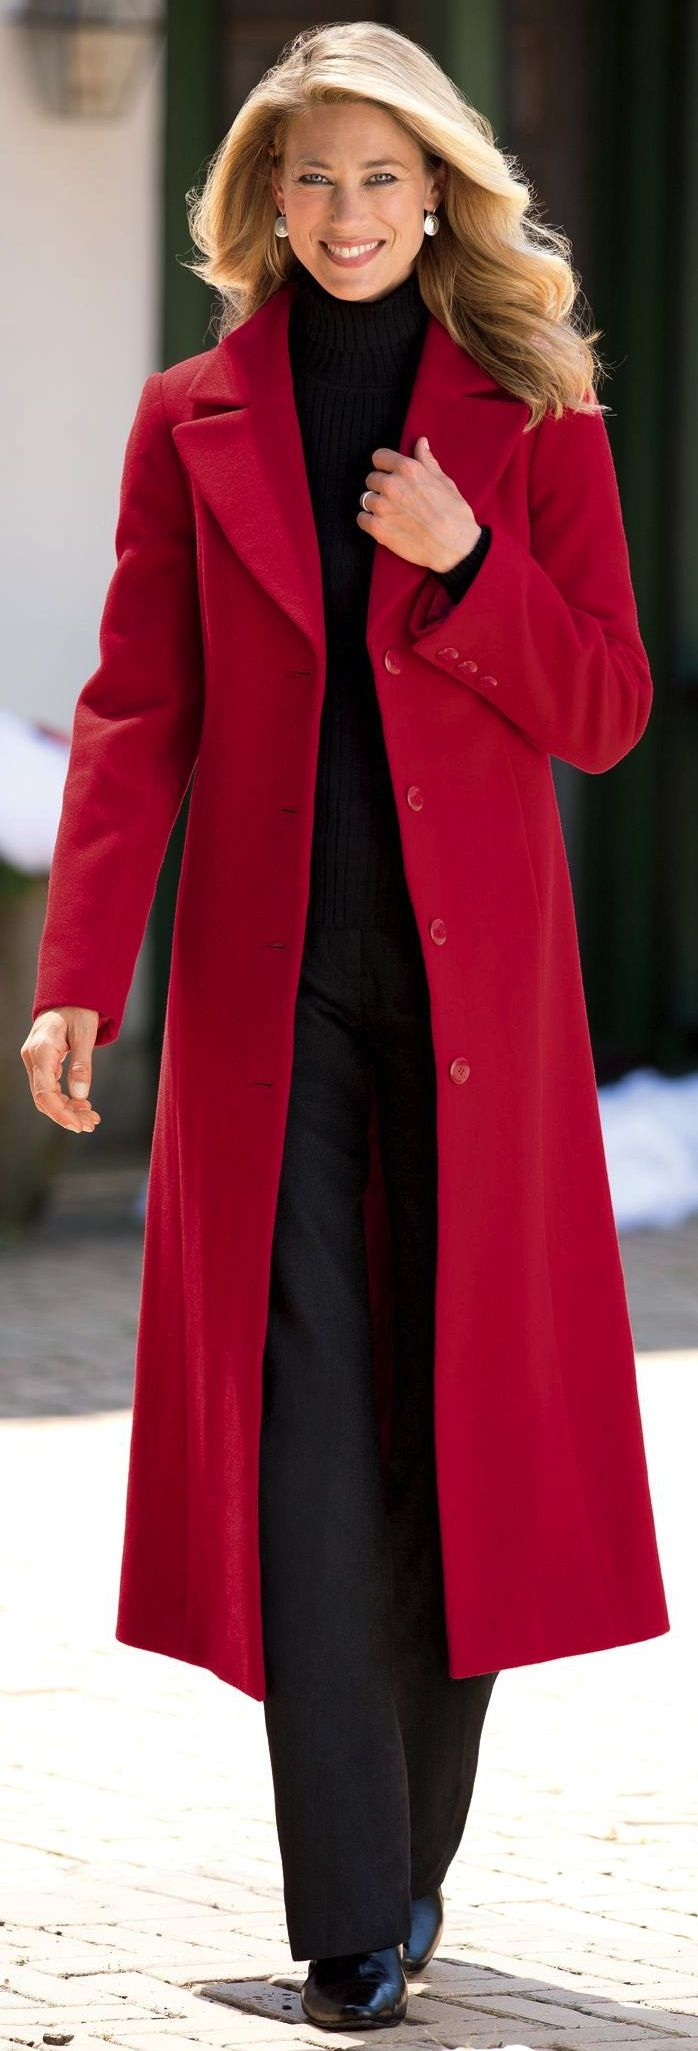 17 Best ideas about Red Coats on Pinterest | Red coat outfit